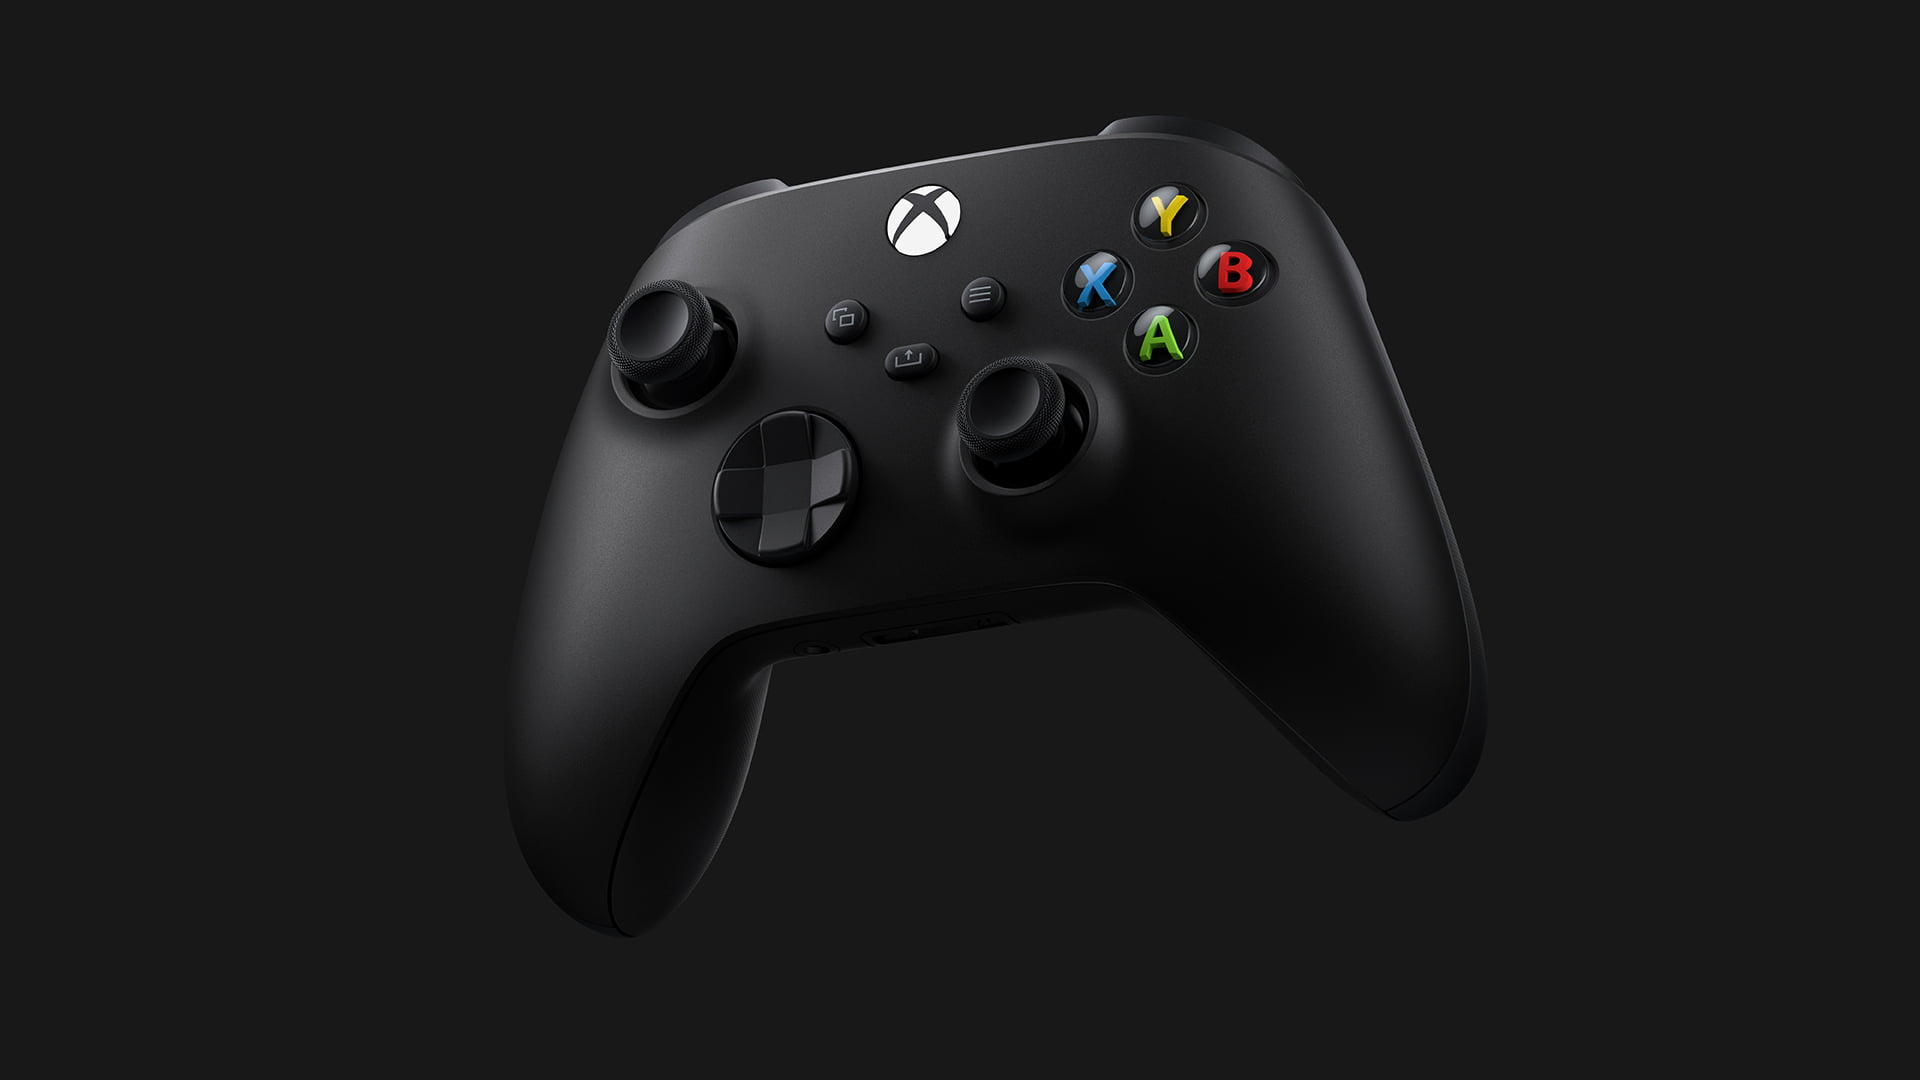 How to connect an Xbox controller to a Windows 10 PC?